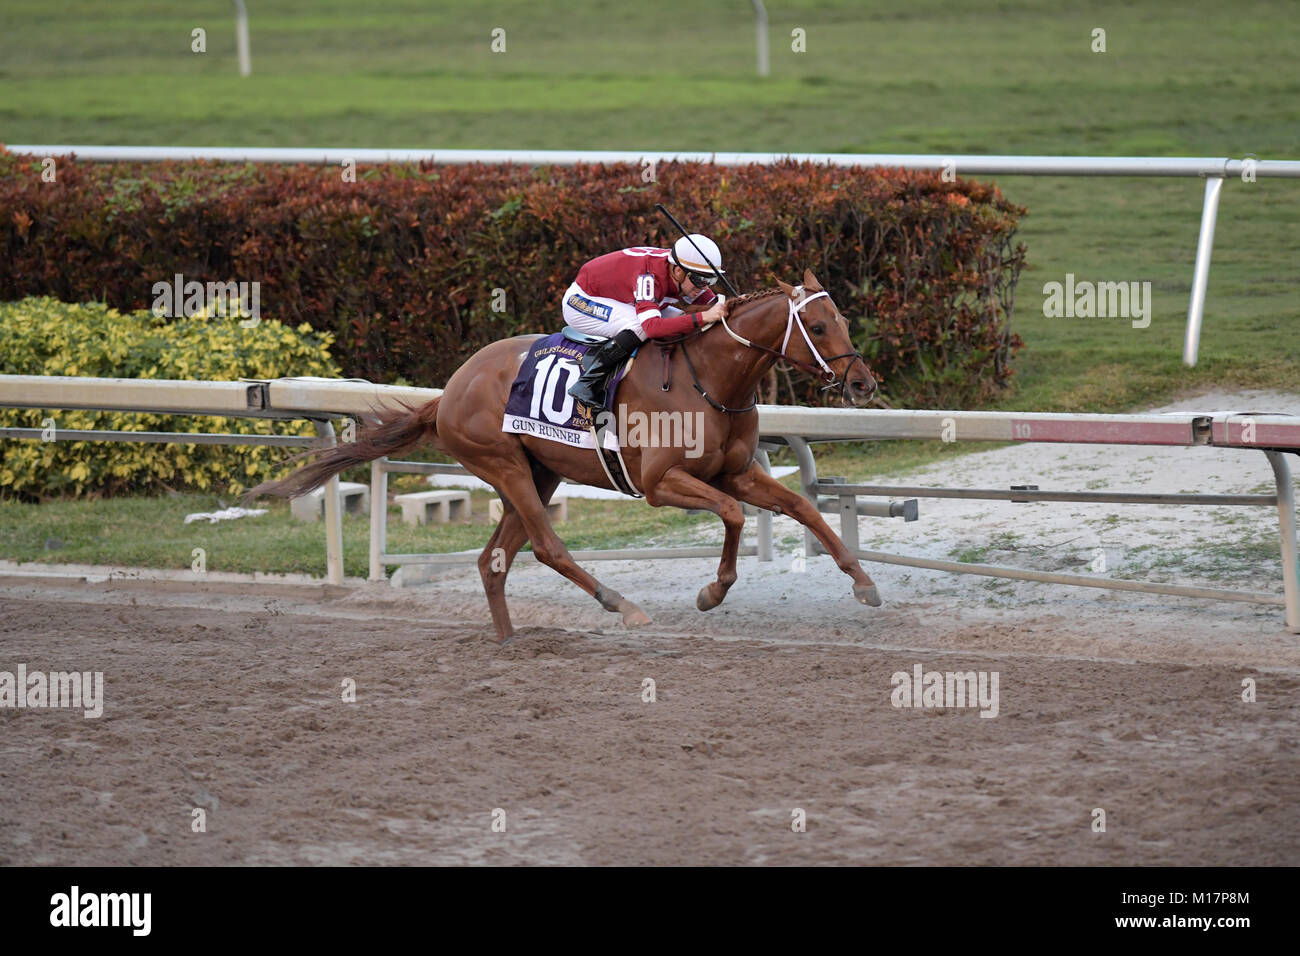 Betting Florida United States Stock Photos & Betting ...